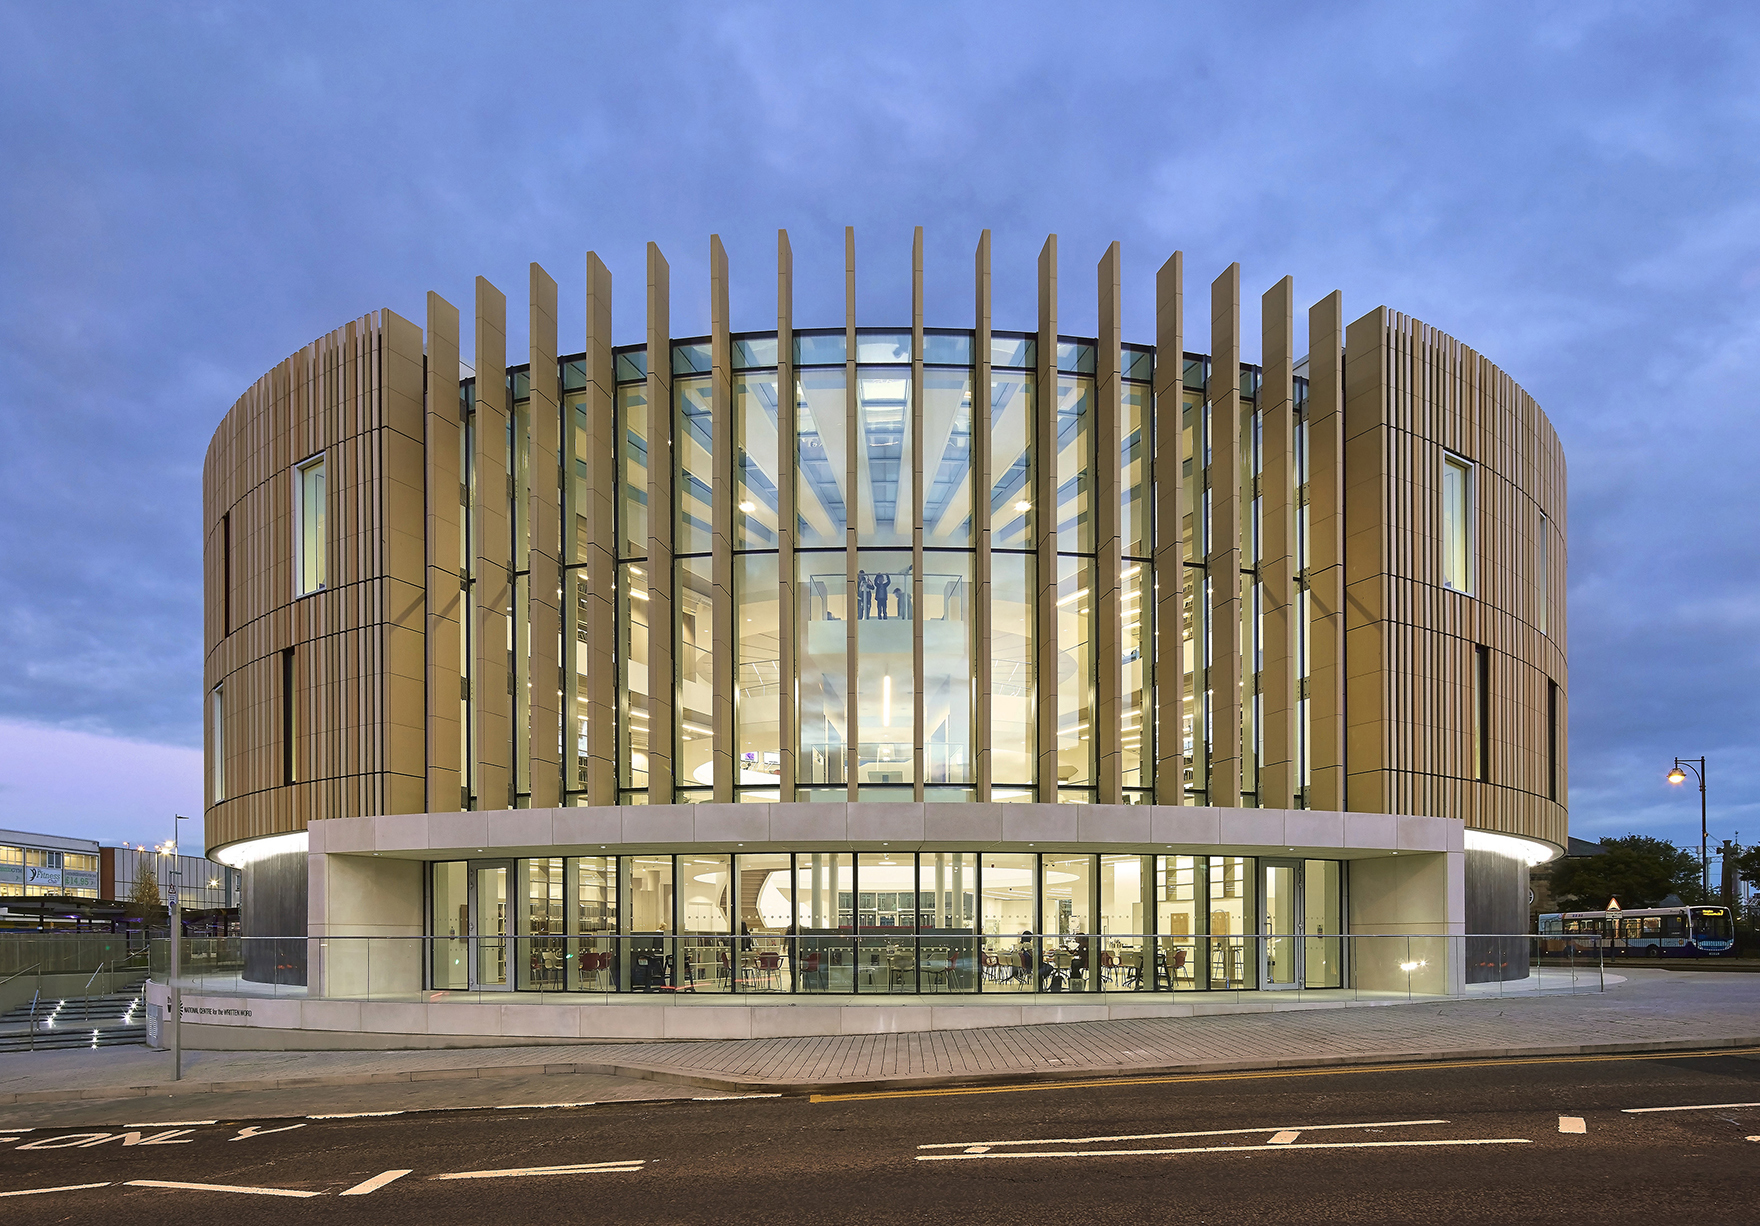 The Word South Shields Circular Building Entrance Facade At Dusk Lh